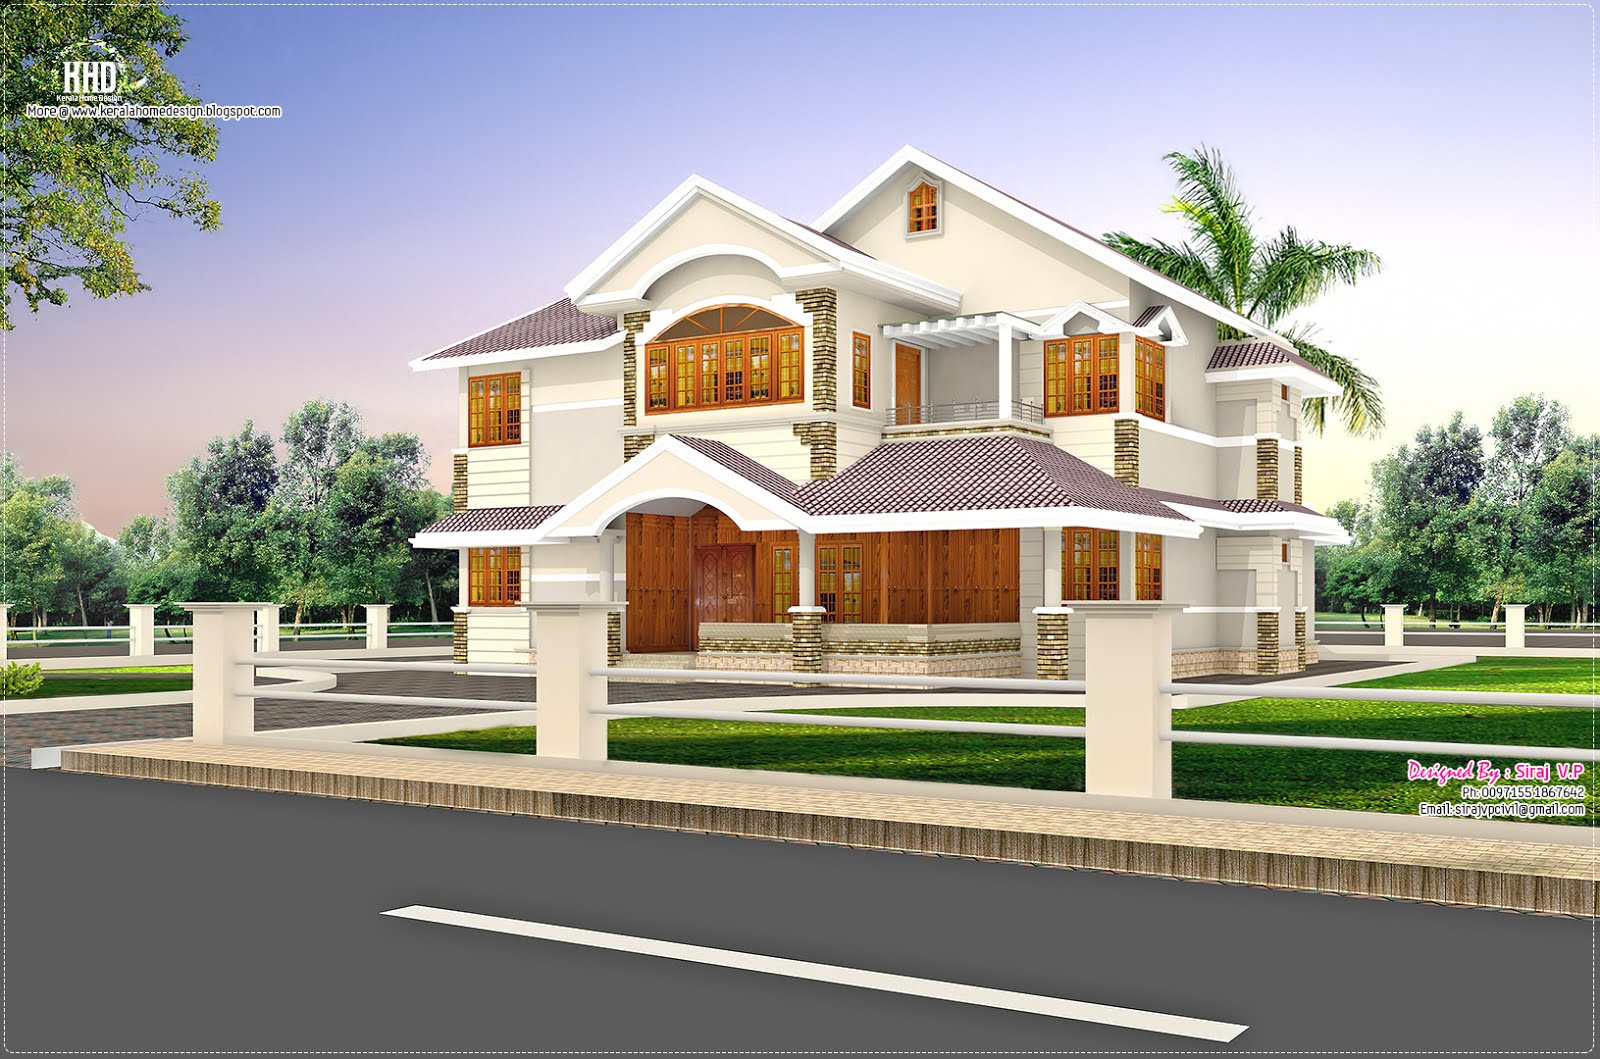 Home design 3d for 3d home architect